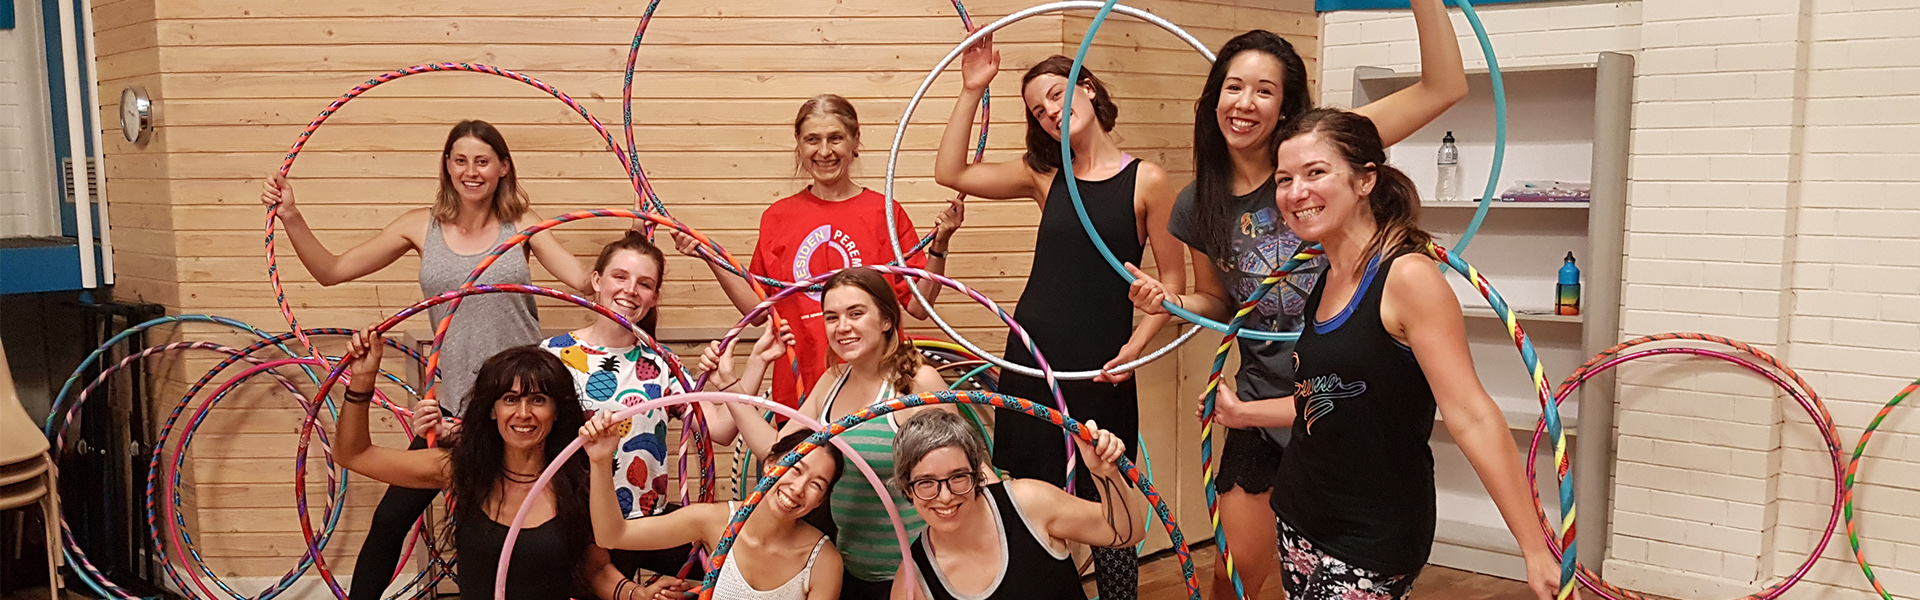 Hula hoop class students posing with hoops after Hoop Sparx hula hoop class melbourne